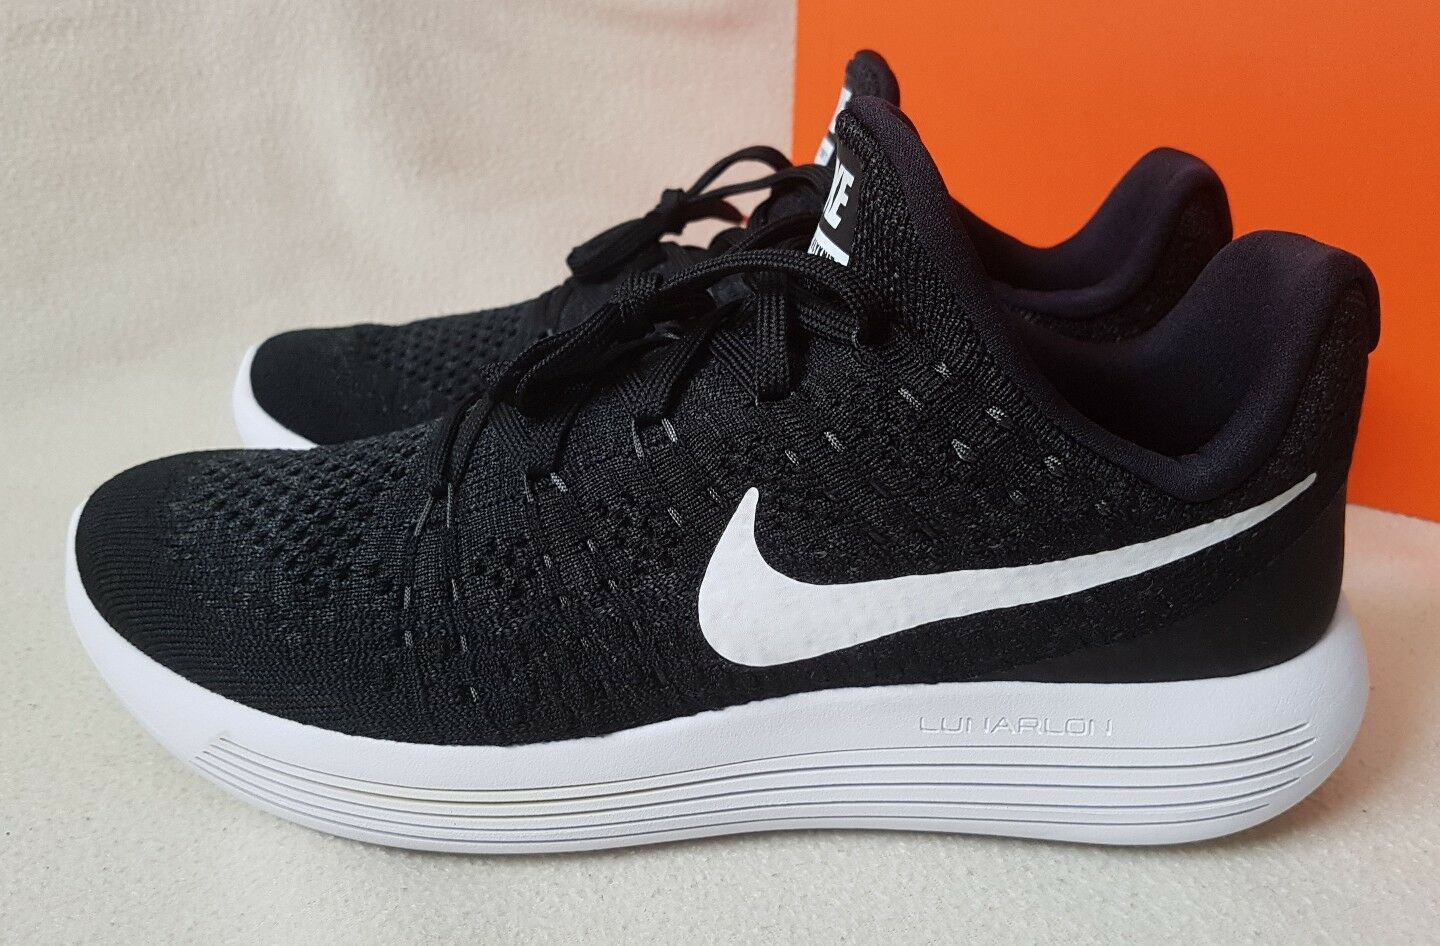 NIKE LUNAREPIC LOW FLYKNIT 2 TRAINERS SNEAKERS RUNNING noir 863779 001 RRP £140